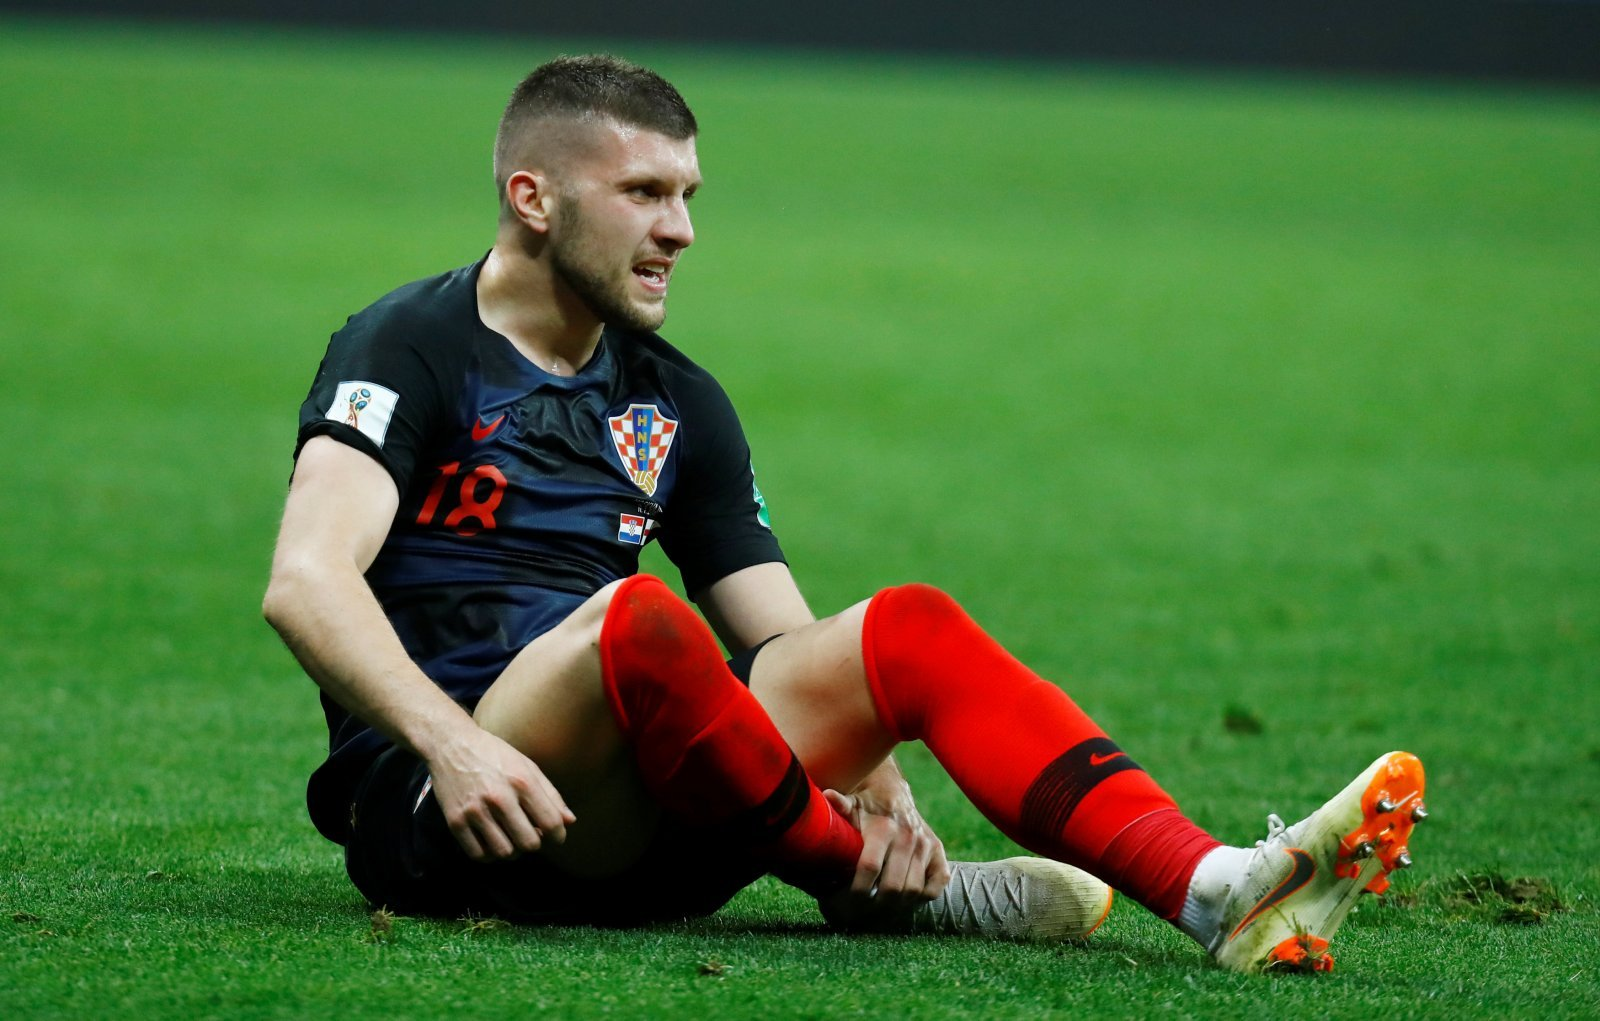 Ante Rebic is far more suited to Tottenham than Emery's Arsenal